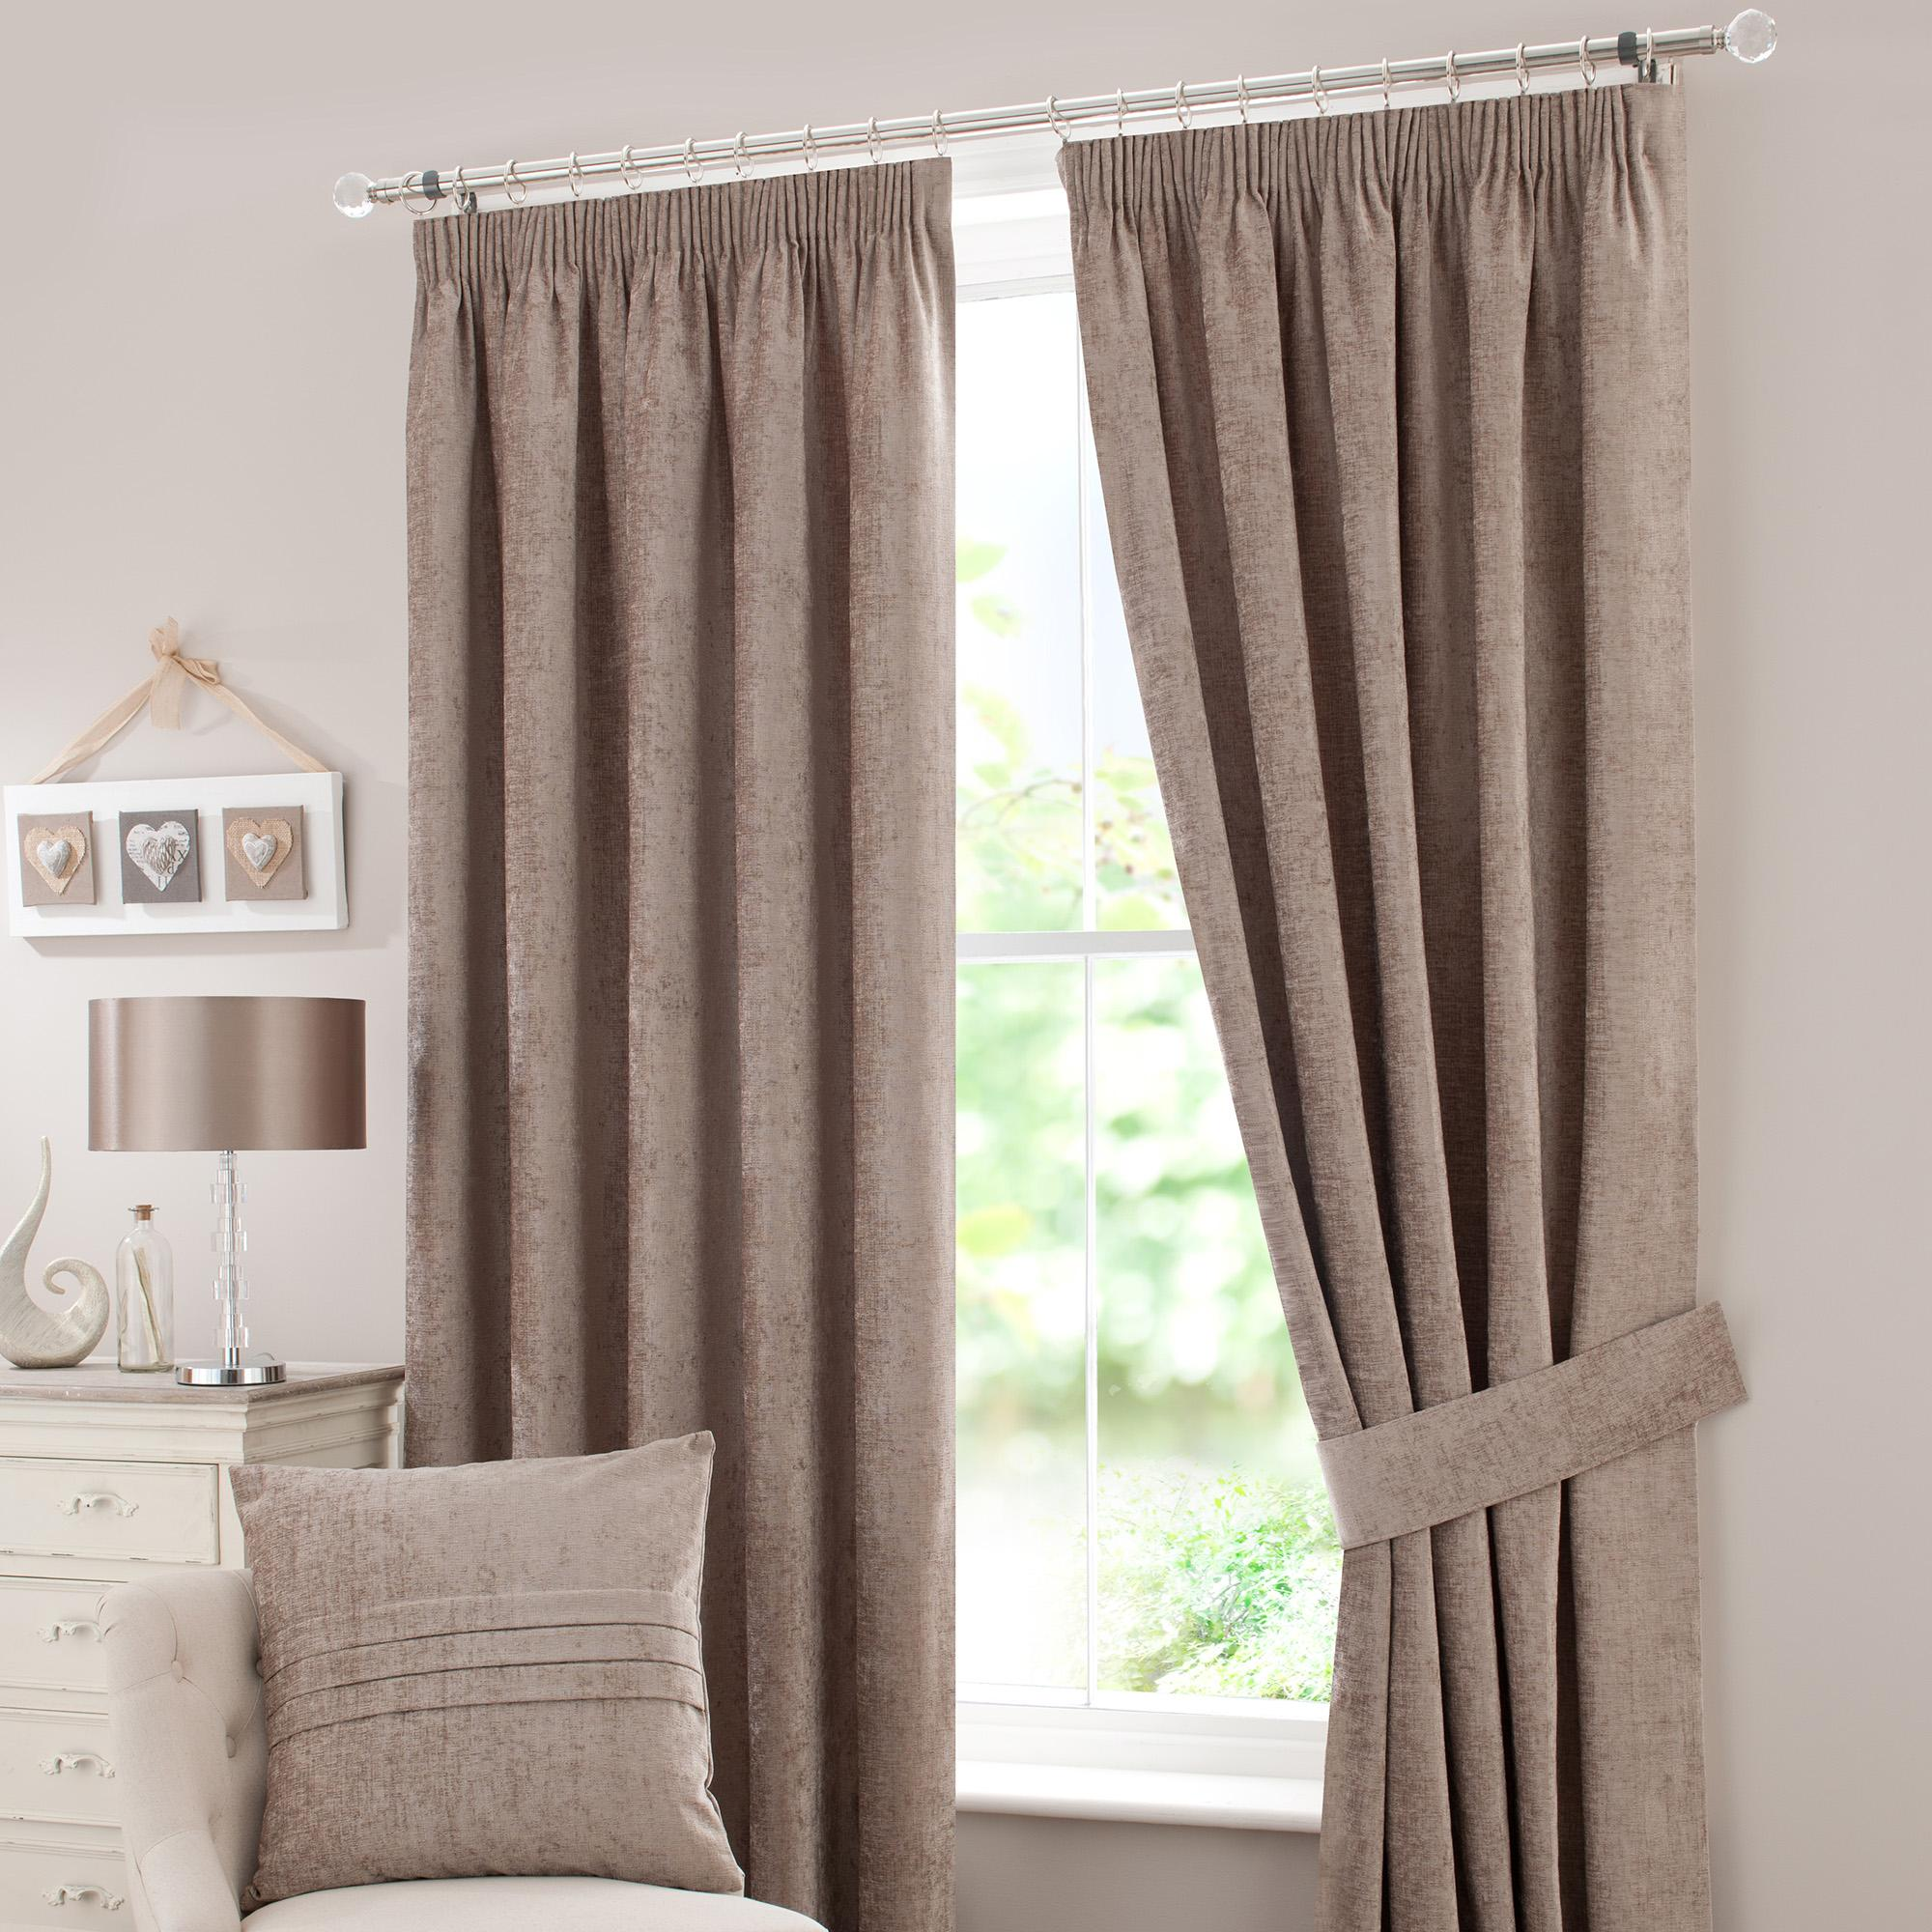 chenille taupe lined pencil pleat curtains vvoiutx